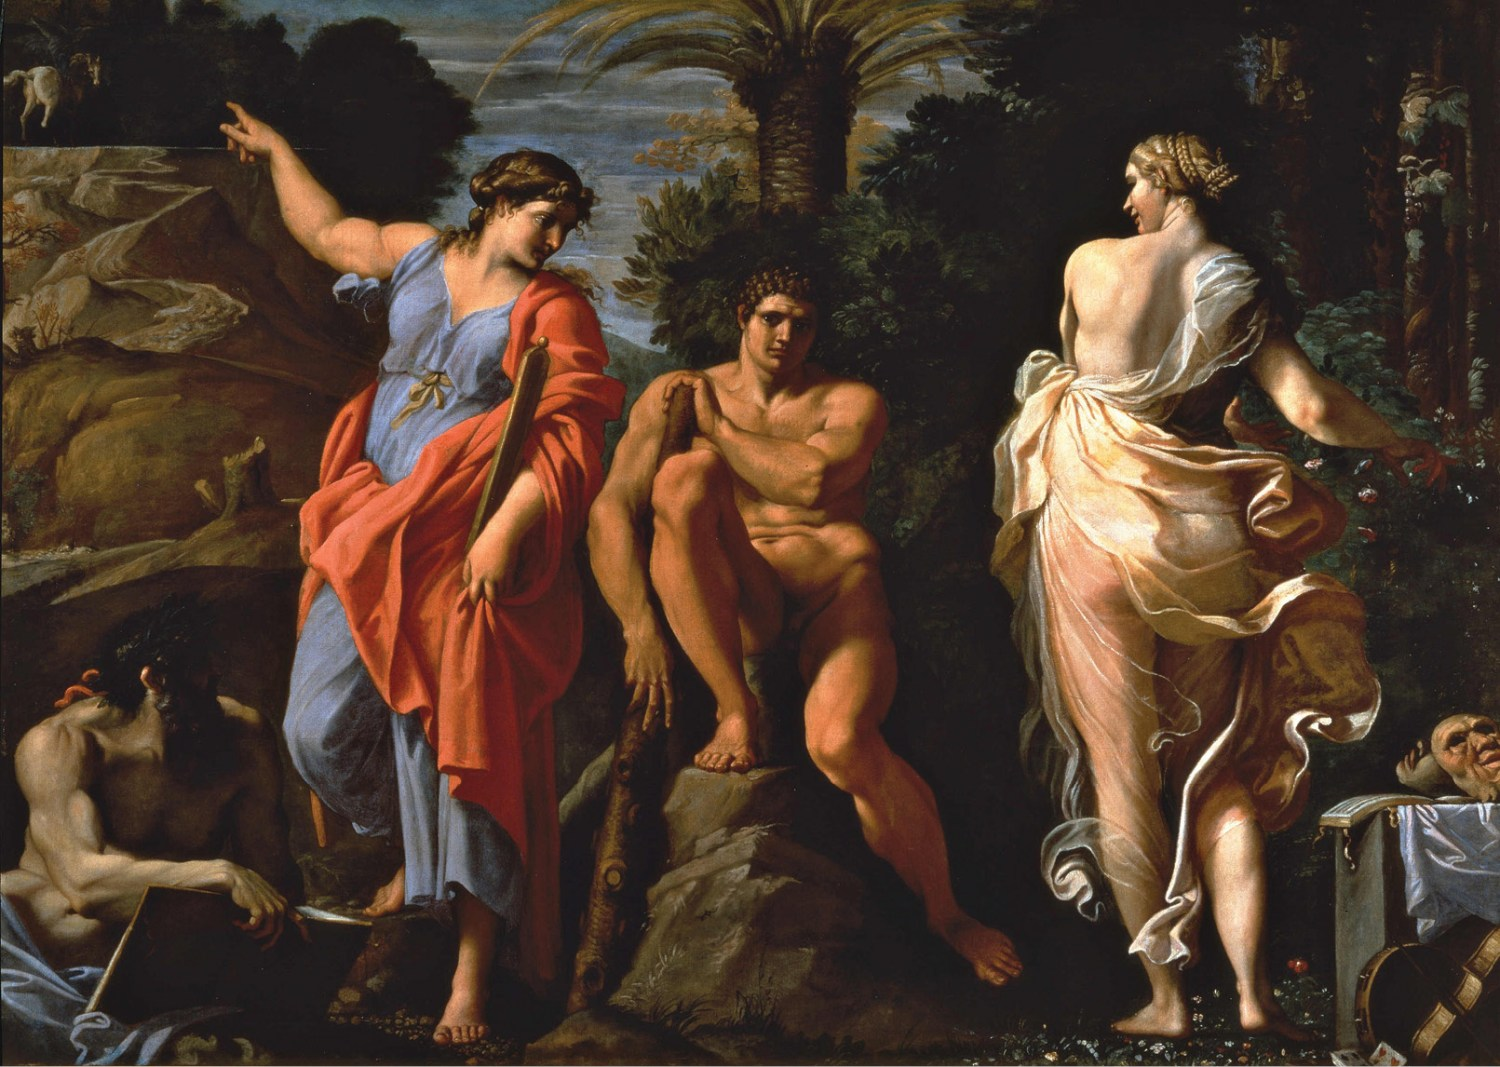 LEFT Annibale Carracci's famous 1596 painting of 'The Choice of Hercules'. This image proved hugely influential to later artists, and inspired the Earl of Shaftesbury to write a treatise discussing his ideal interpretation of the theme.